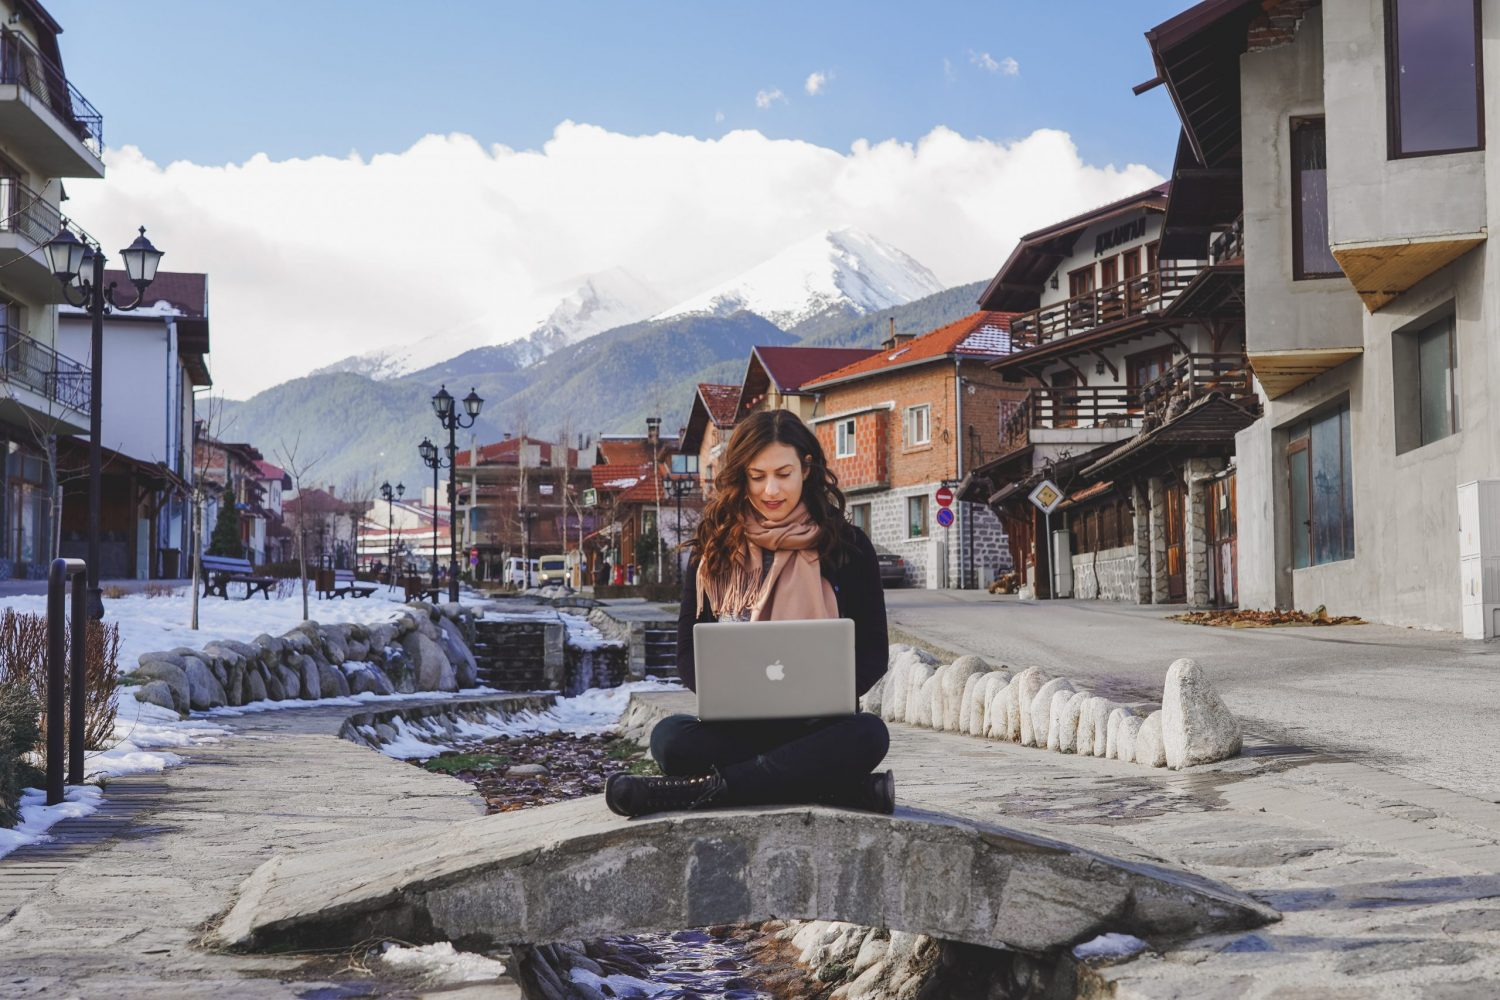 Digital nomad working on a laptop in Bansko, Bulgaria - tips for becoming a digital nomad!